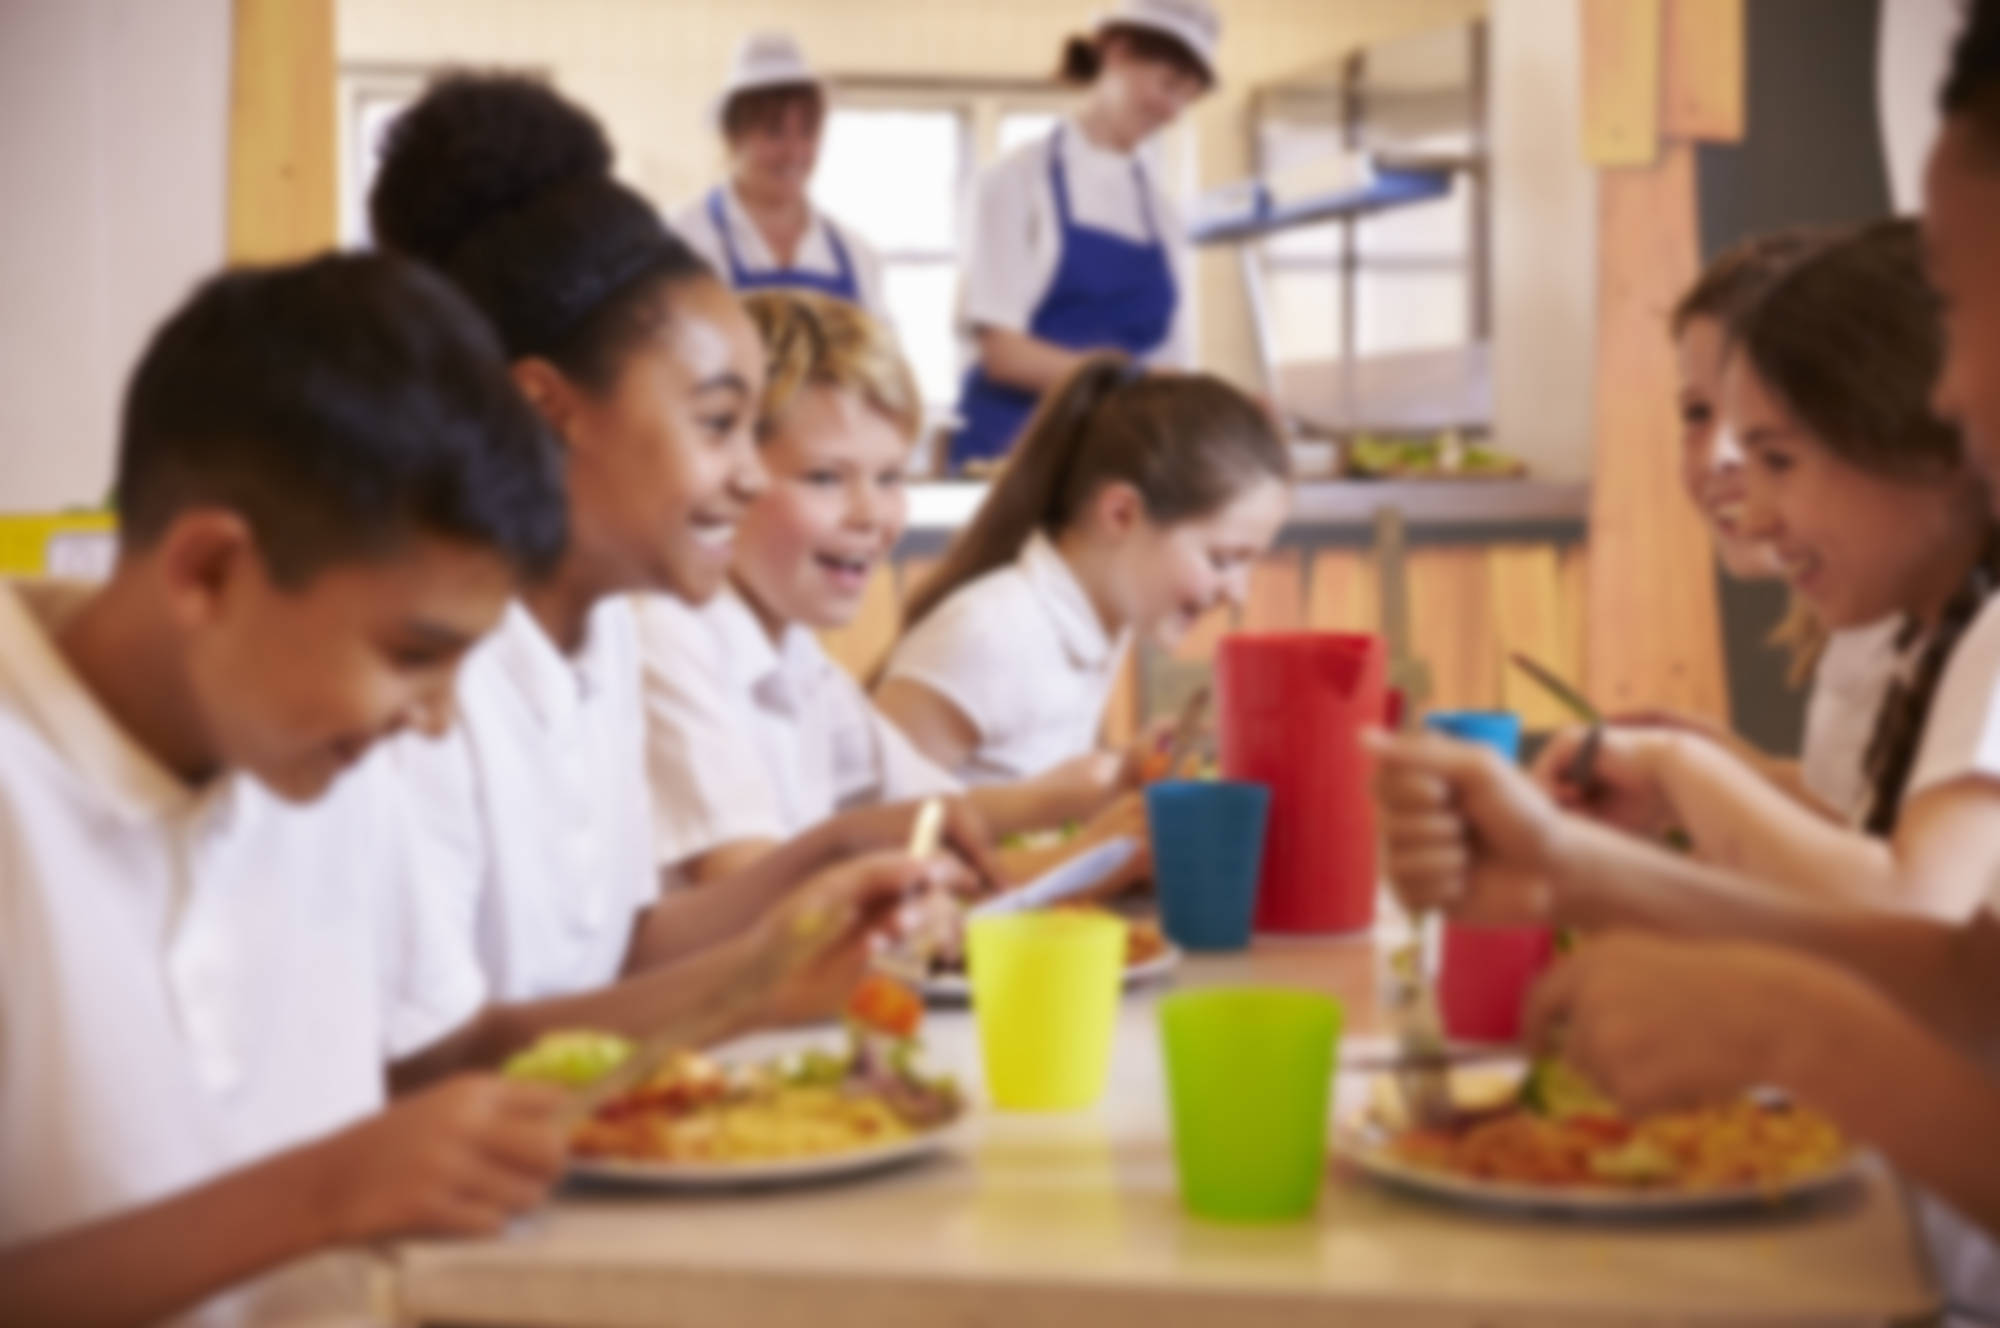 Help continue the outreach to   FOREST LANE ACADEMY   where 91% of the students receive free or reduced lunch